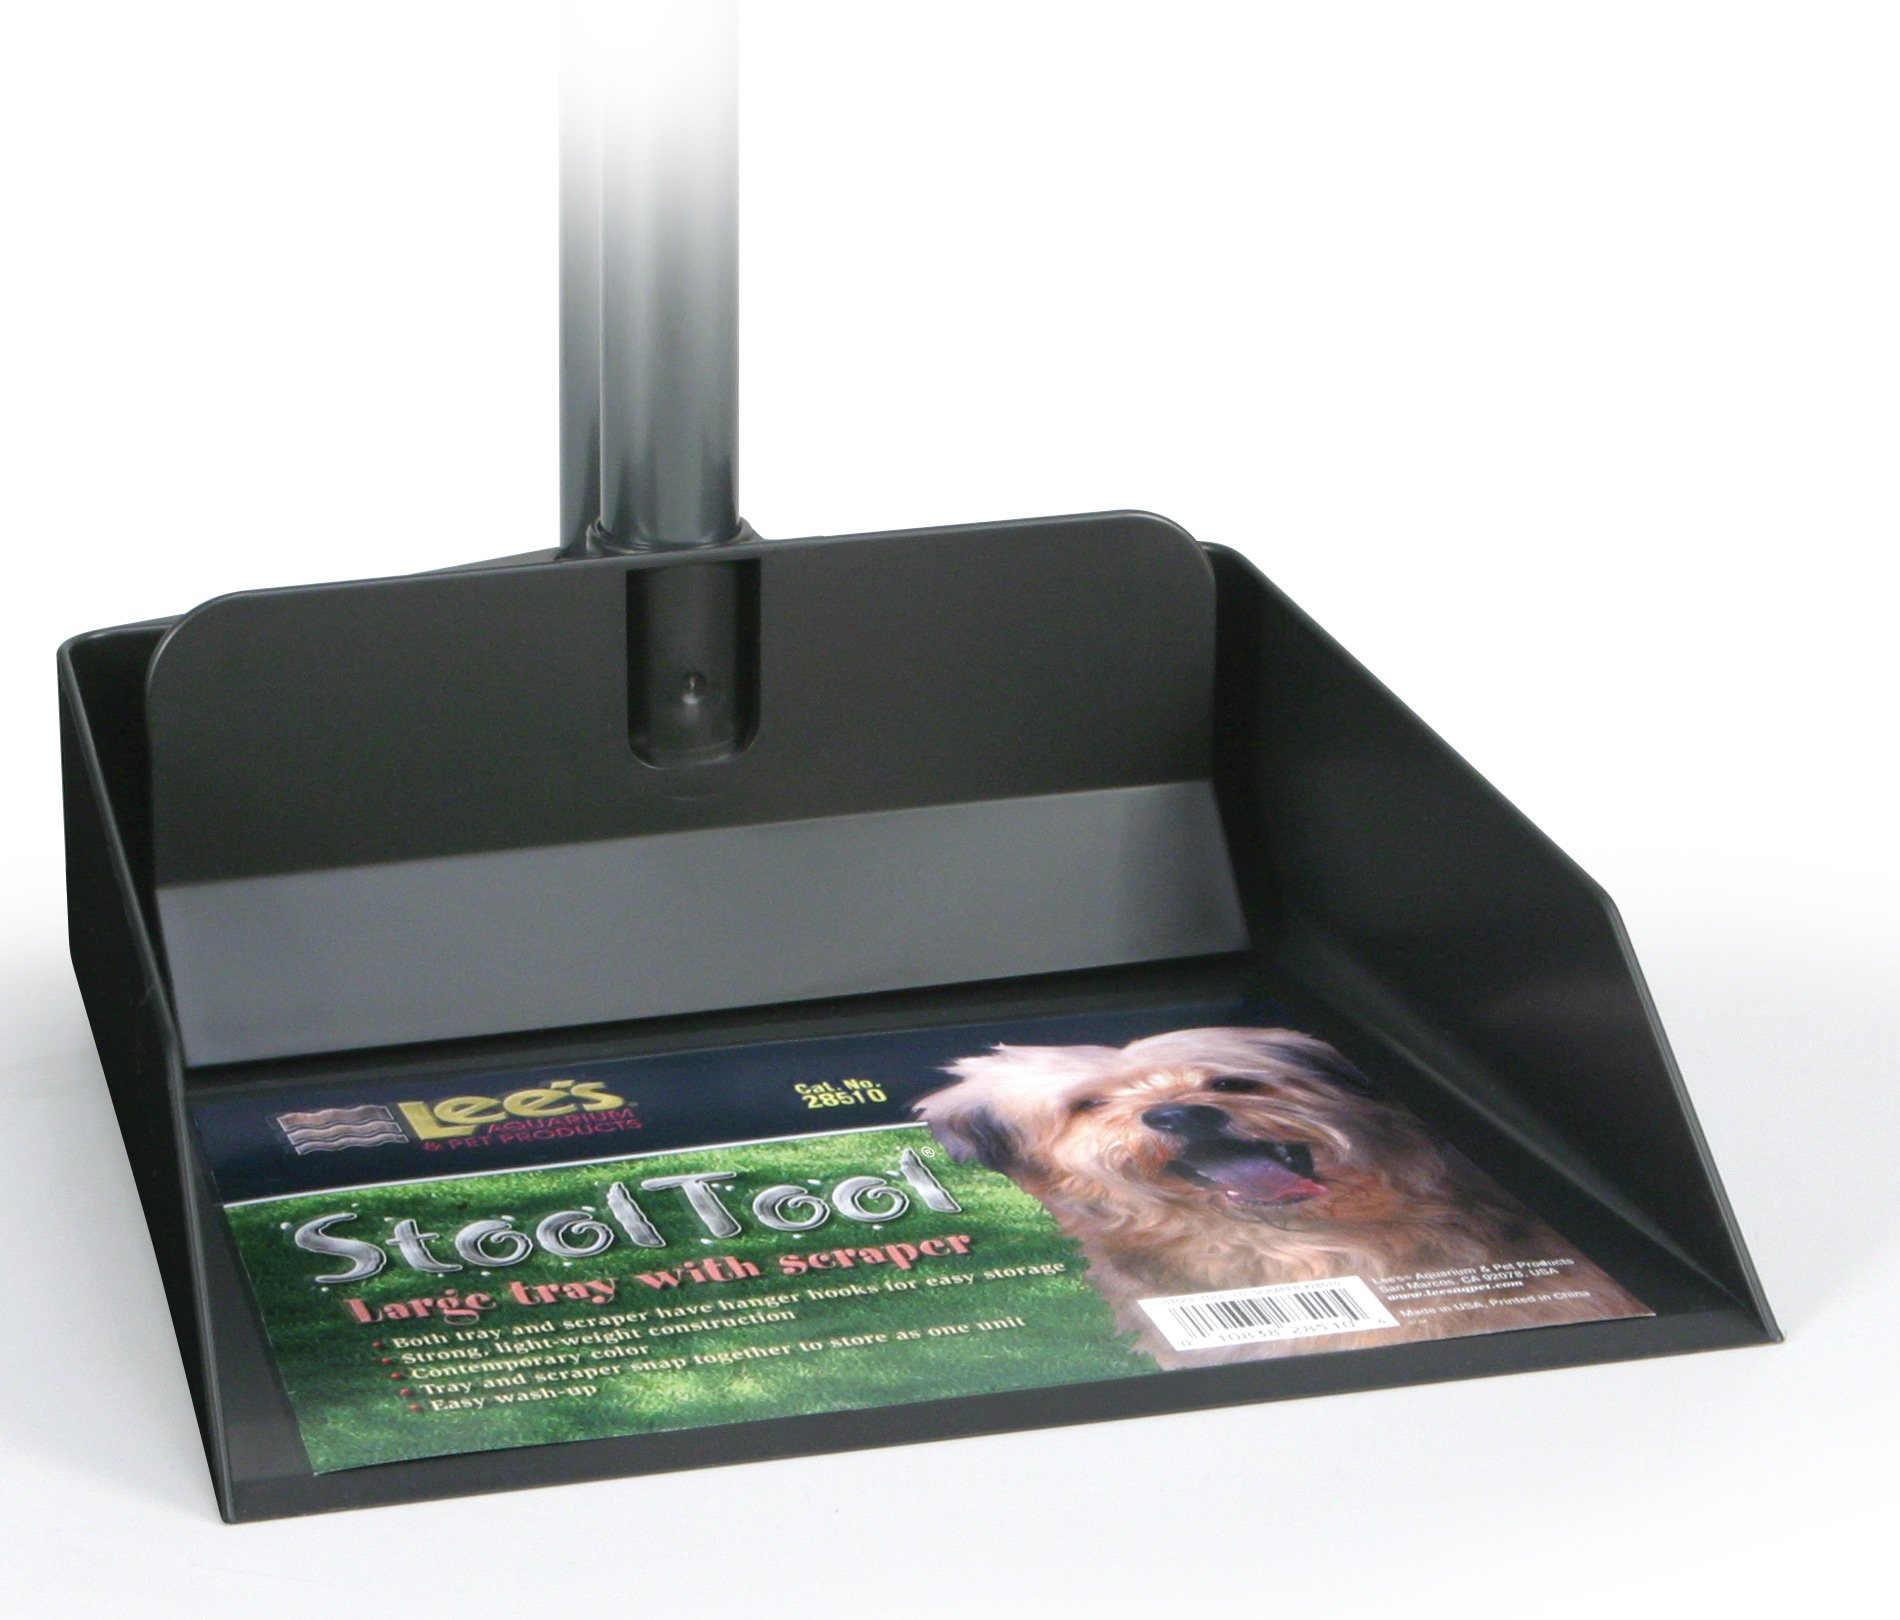 Lee's Stool Tool Clean up System, Large Tray W/Scraper by Lee's